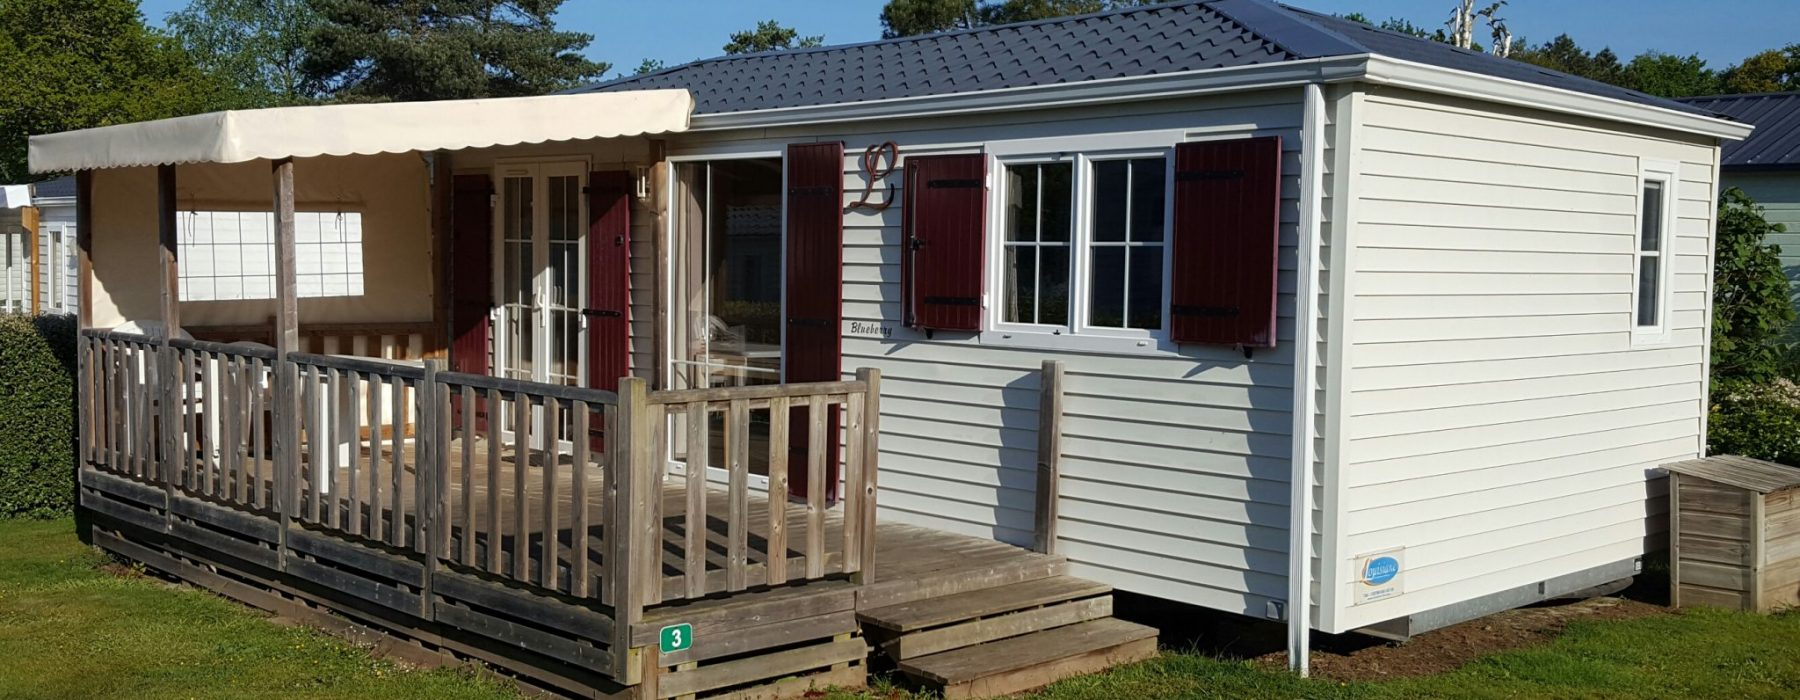 Mobil-home camping Pont-Scorff